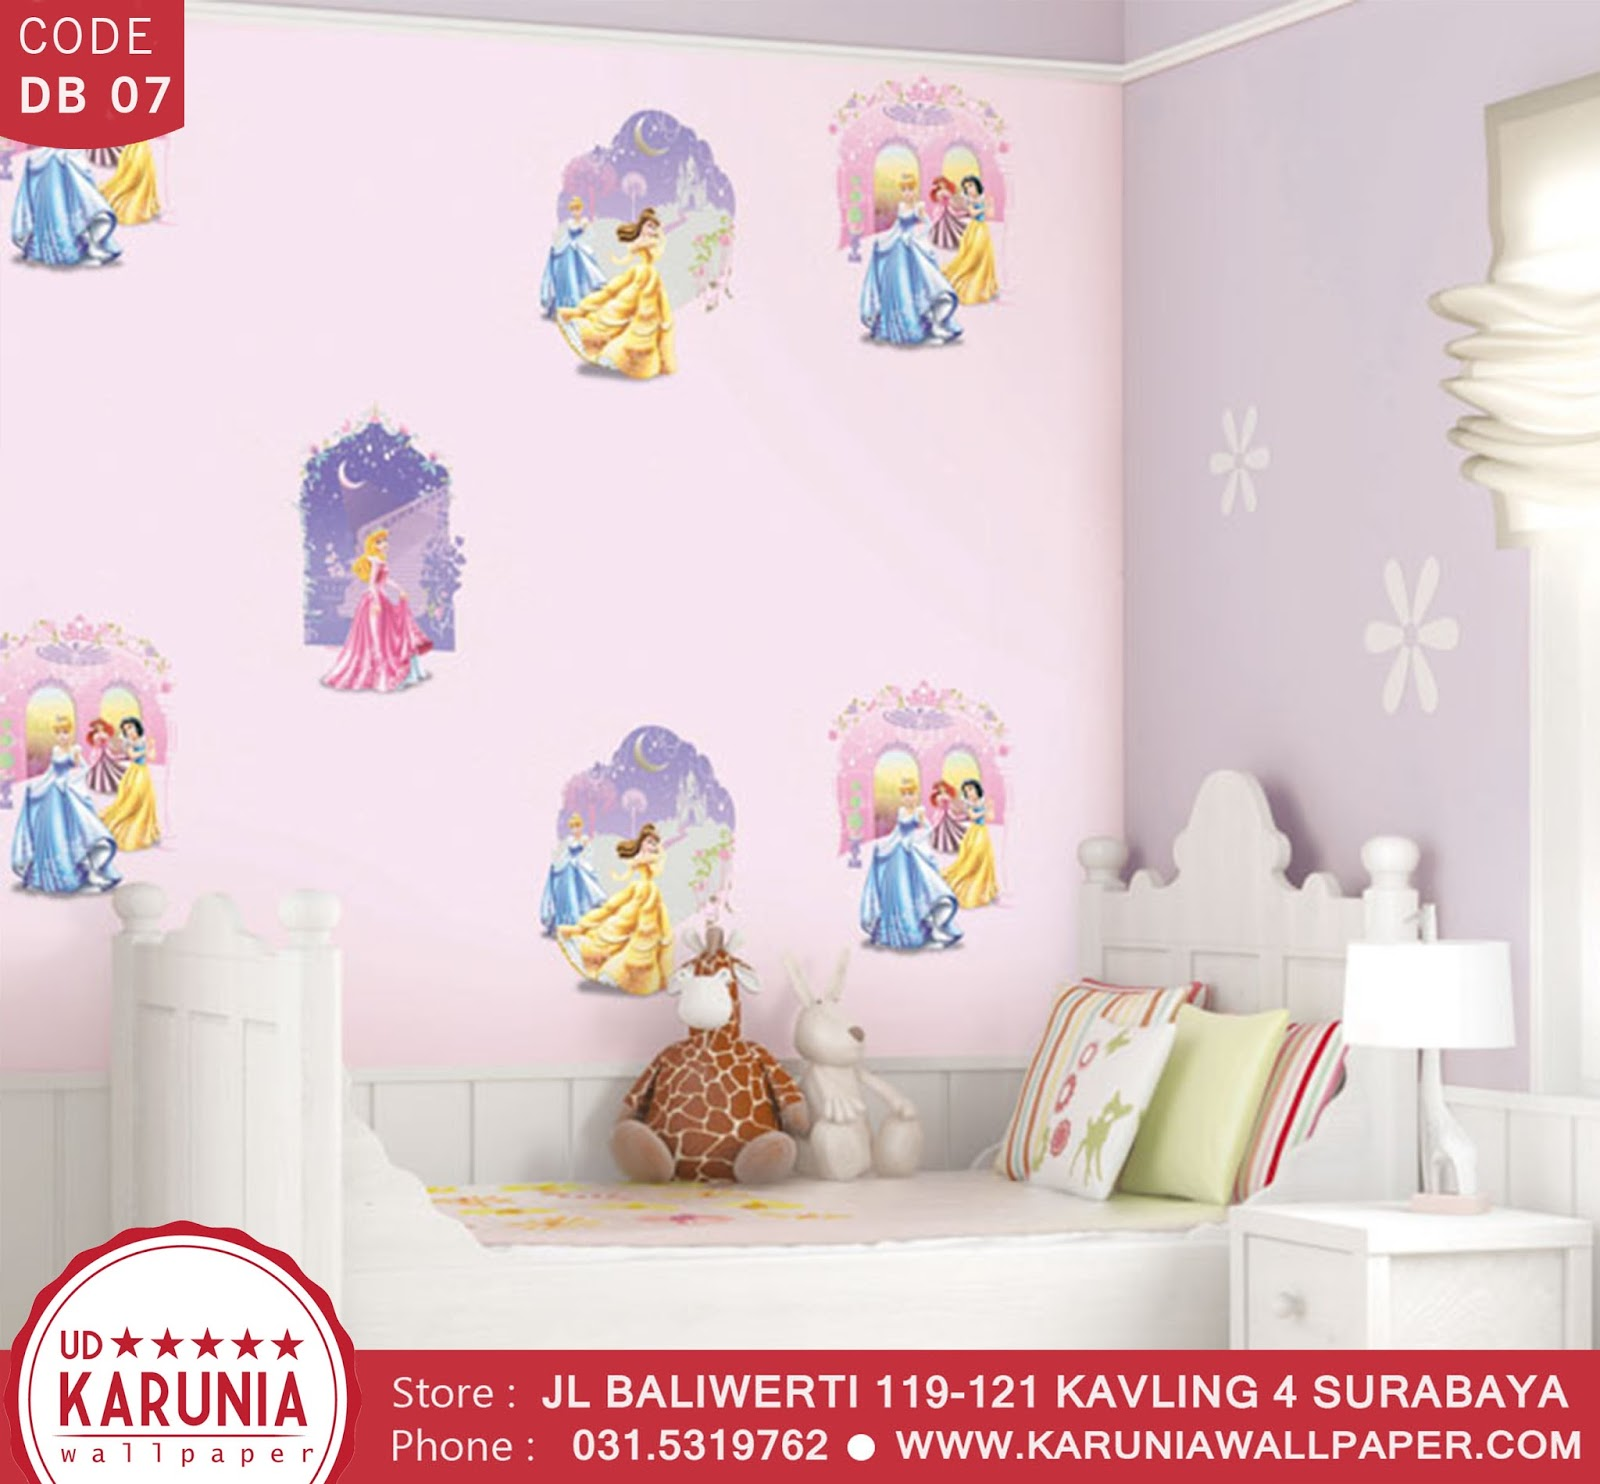 jual wallpaper princess karuniawallpaper